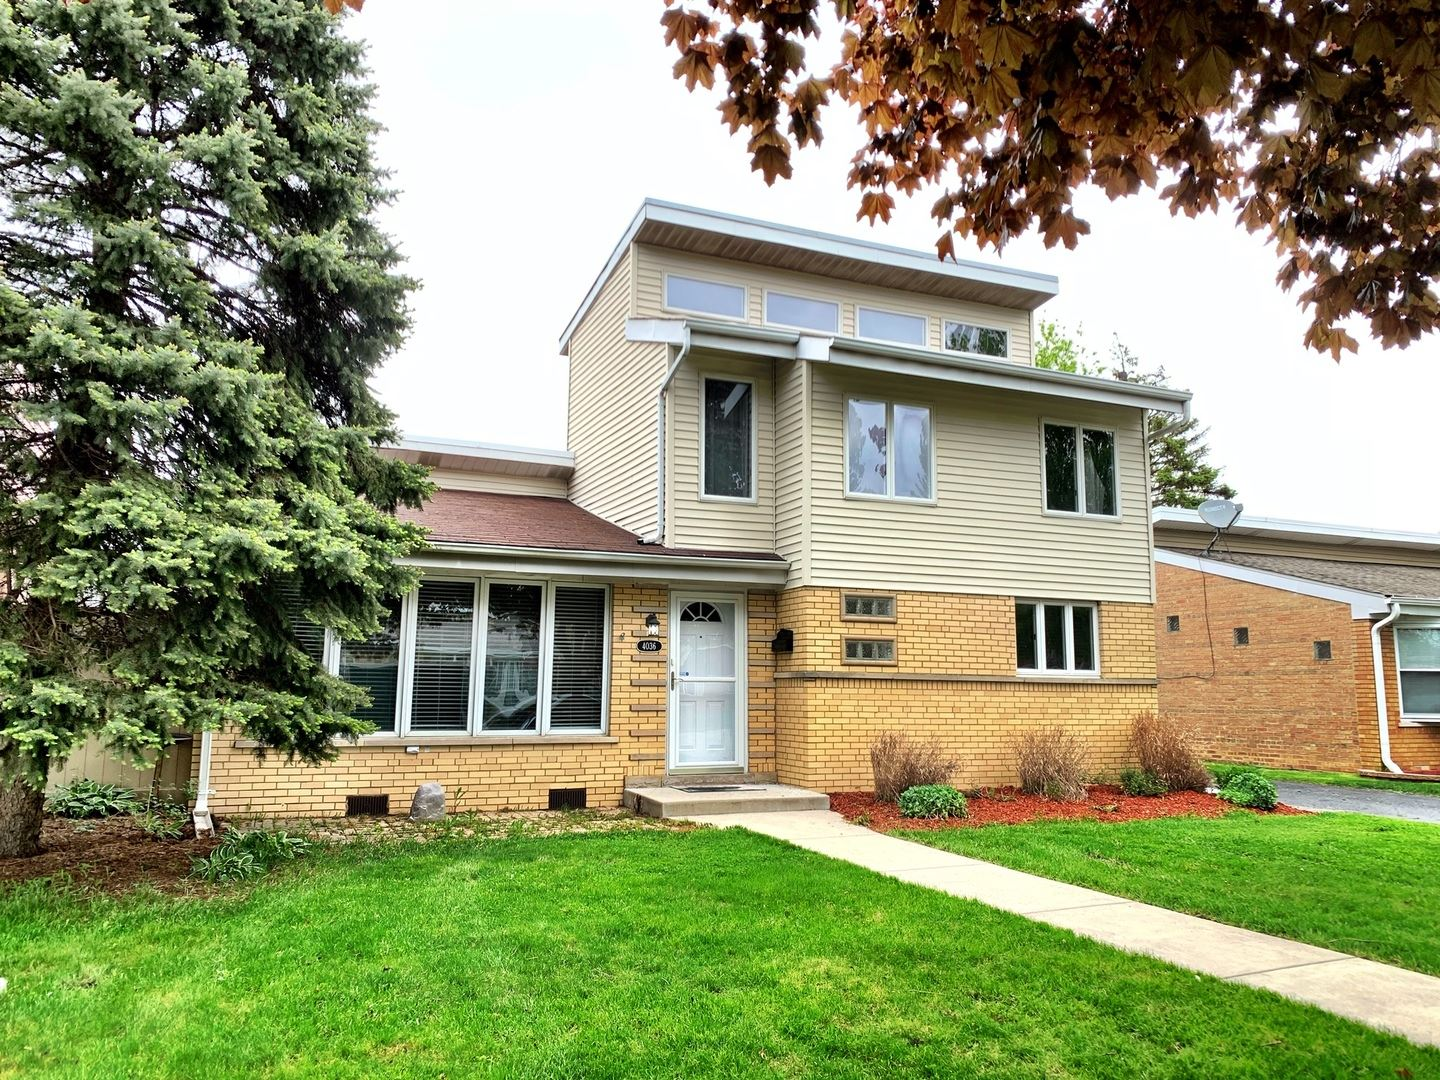 4036 W 106th Street, Oak Lawn, IL 60453 - MLS#: 10724788